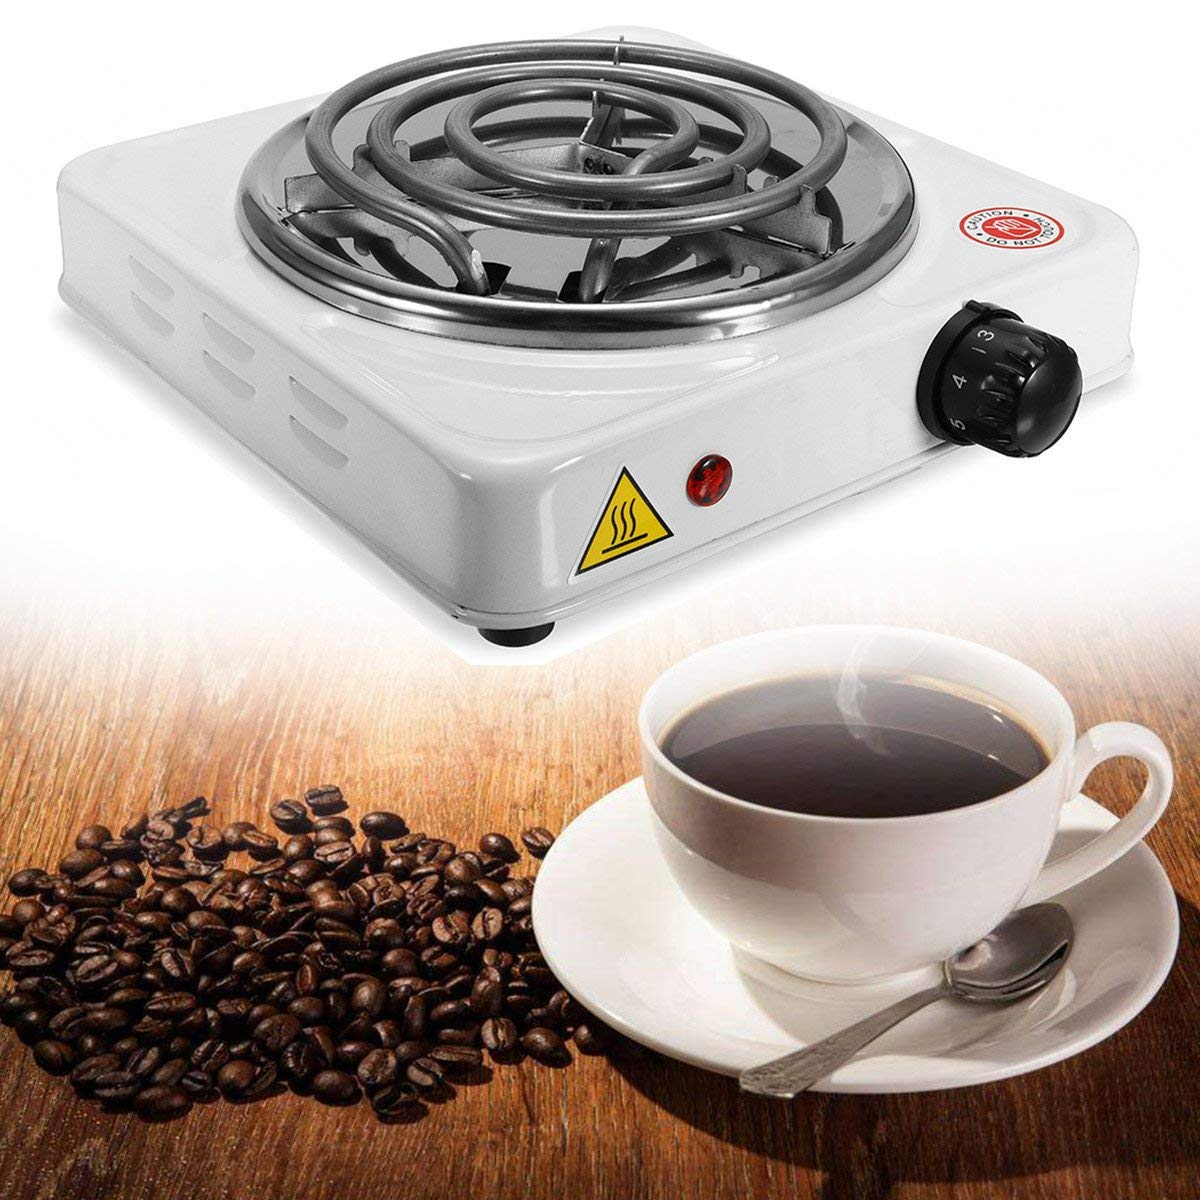 1000W Electric Stove Hot Plate Burner Travel Cooking Appliances Portable Warmer Tea Coffee Heater SINGLE ITEM